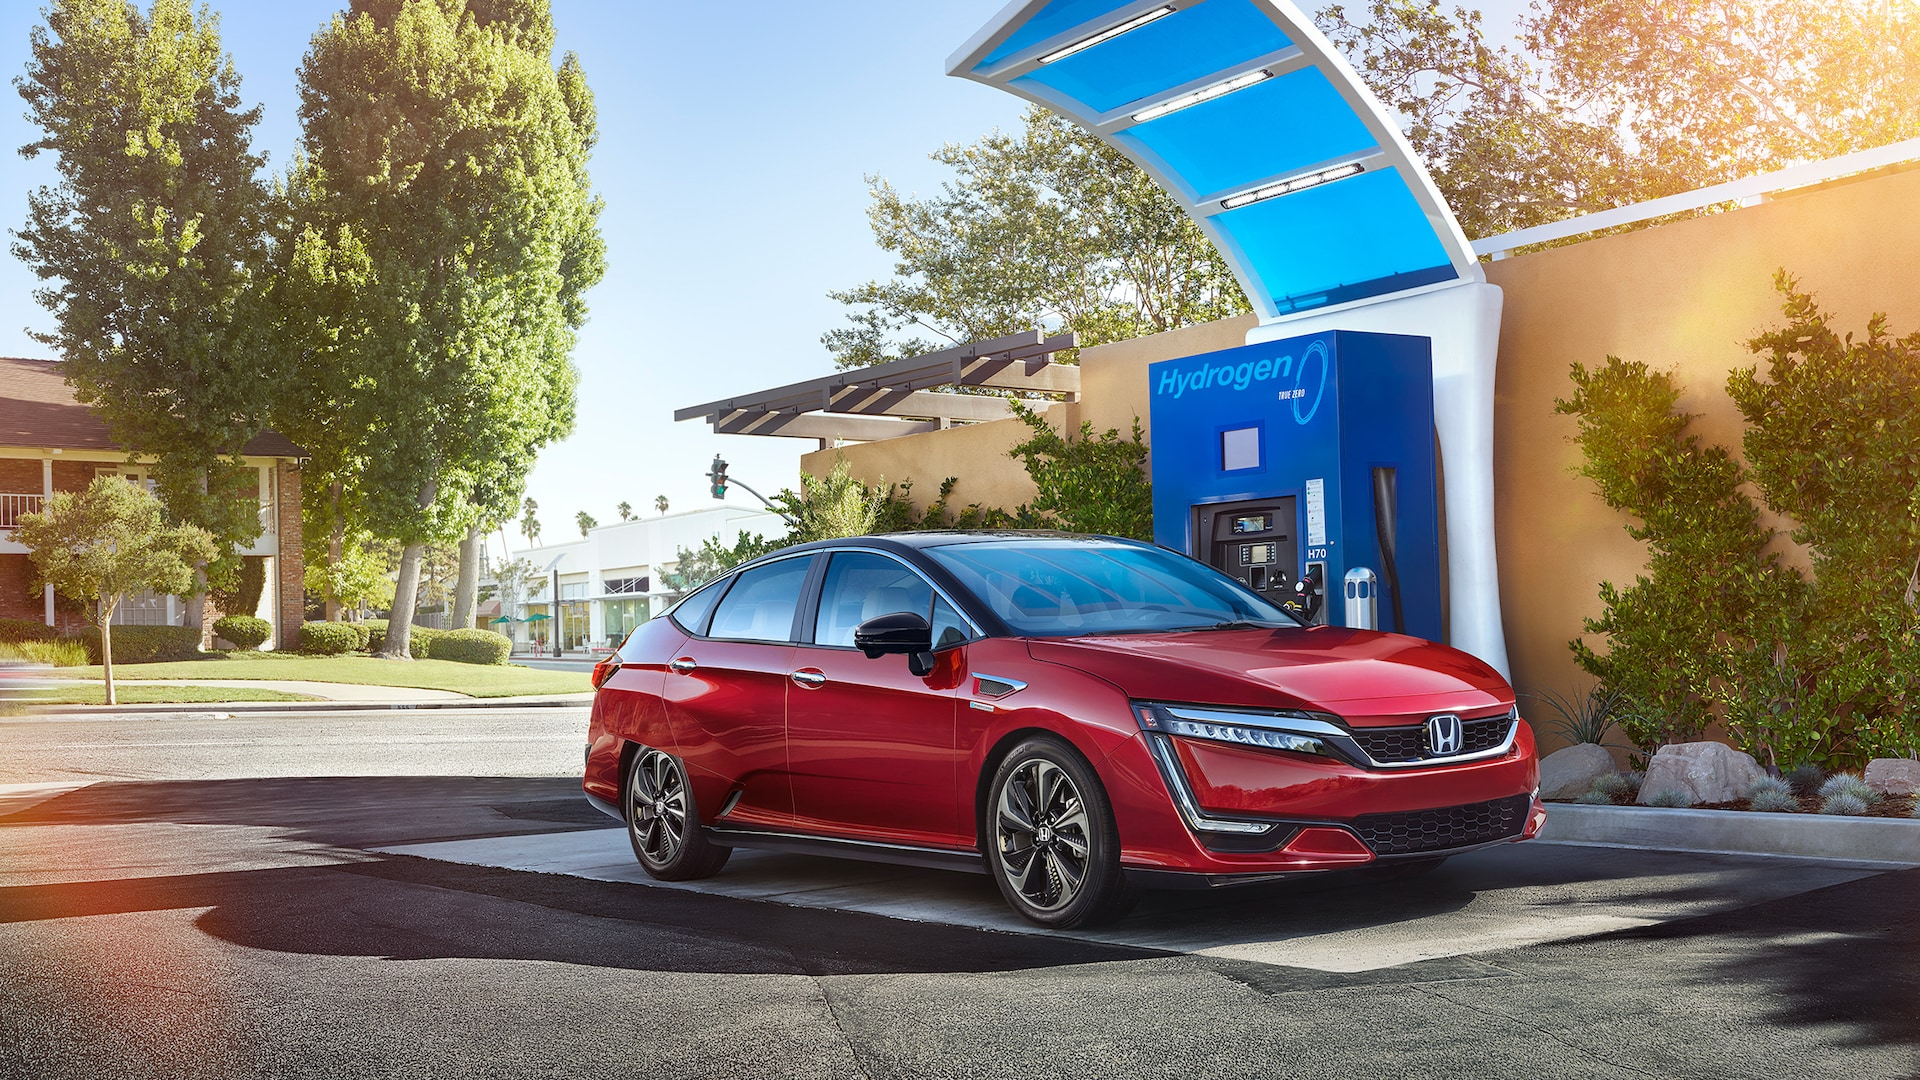 Front view of 2020 Honda Clarity Fuel Cell refueling at hydrogen fuel station.